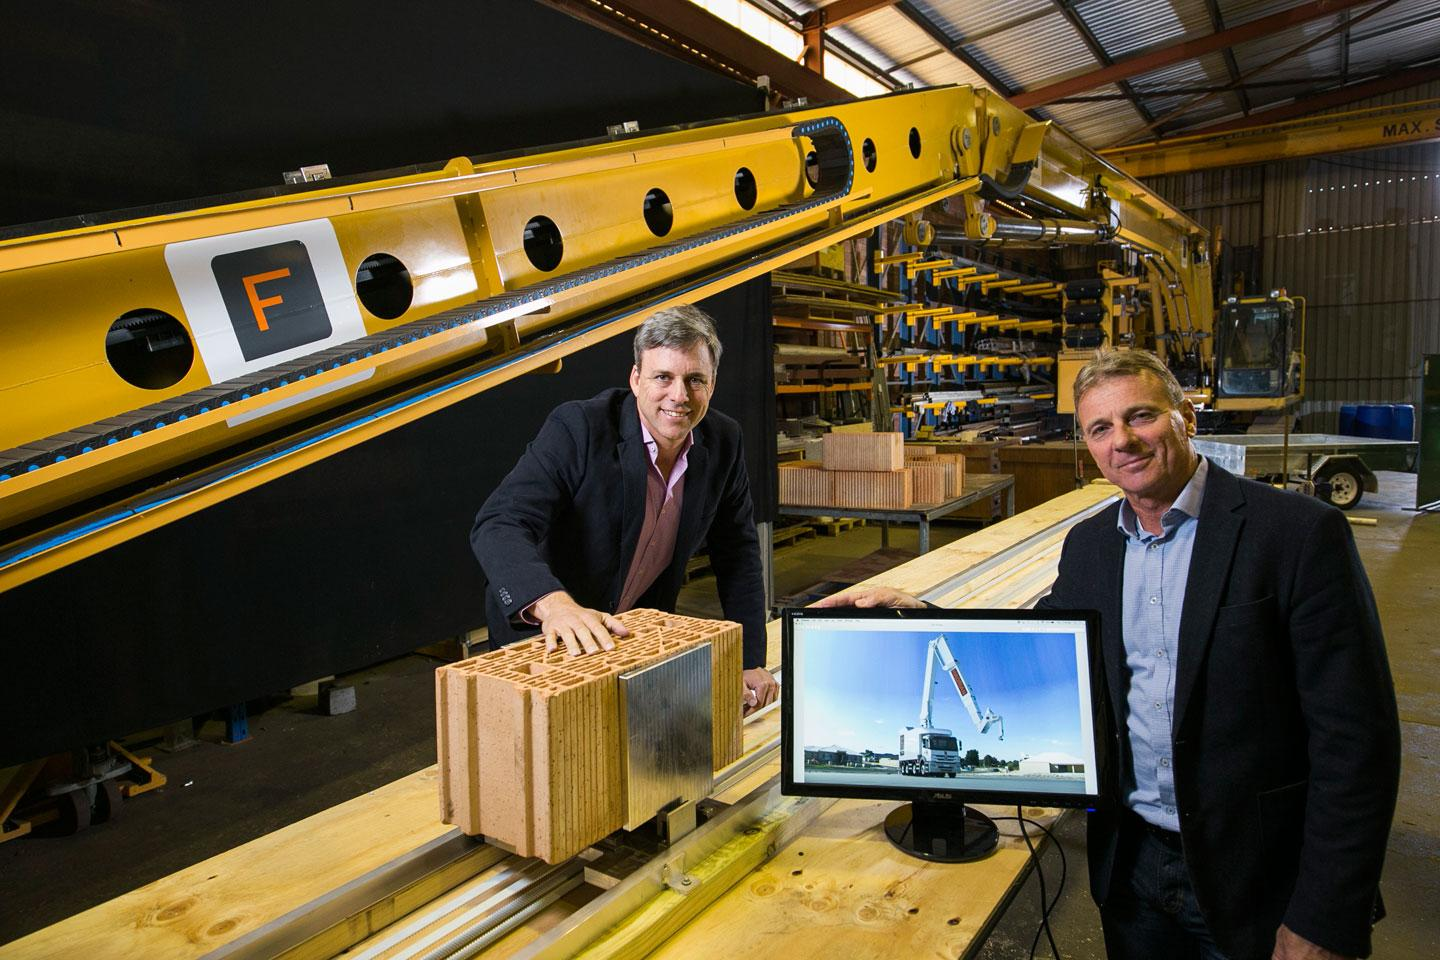 Fastbrick in $35m placement